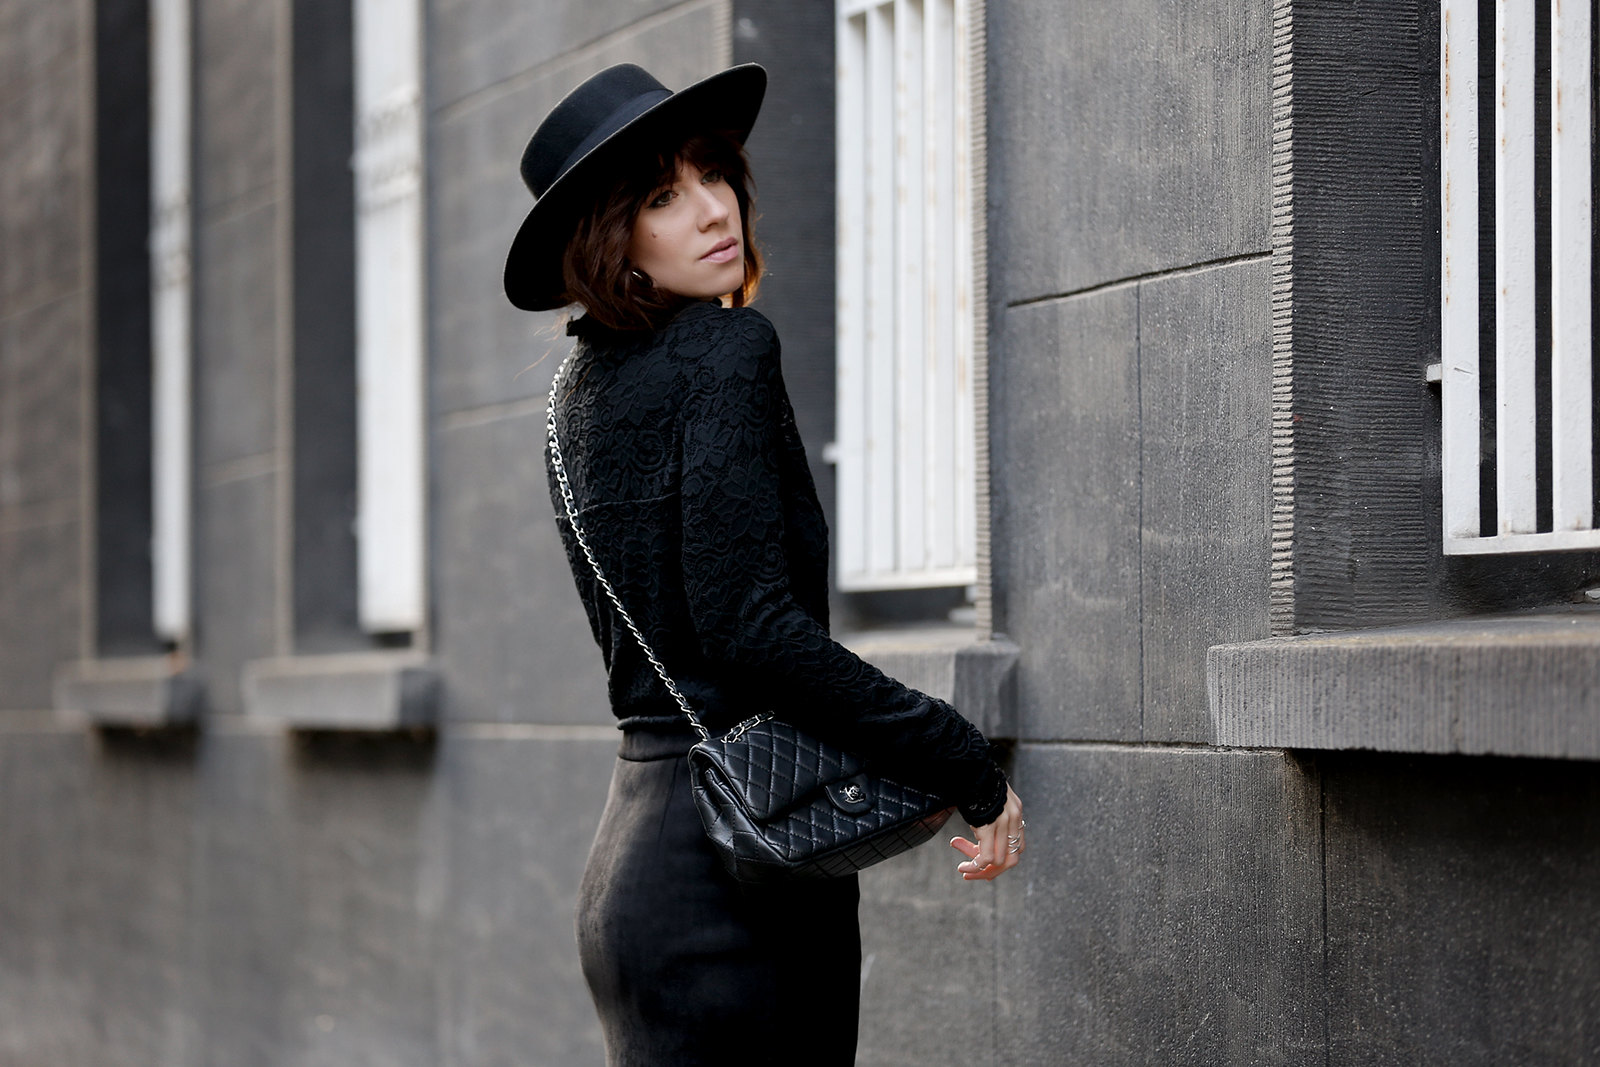 VILA lace layering black allblack hat spanish style dark romance fishnet tights chanel classic luxury bag fashionblogger ricarda schernus cats & dogs modeblog düsseldorf berlin minimal edgy cool styling lookbook ootd 4